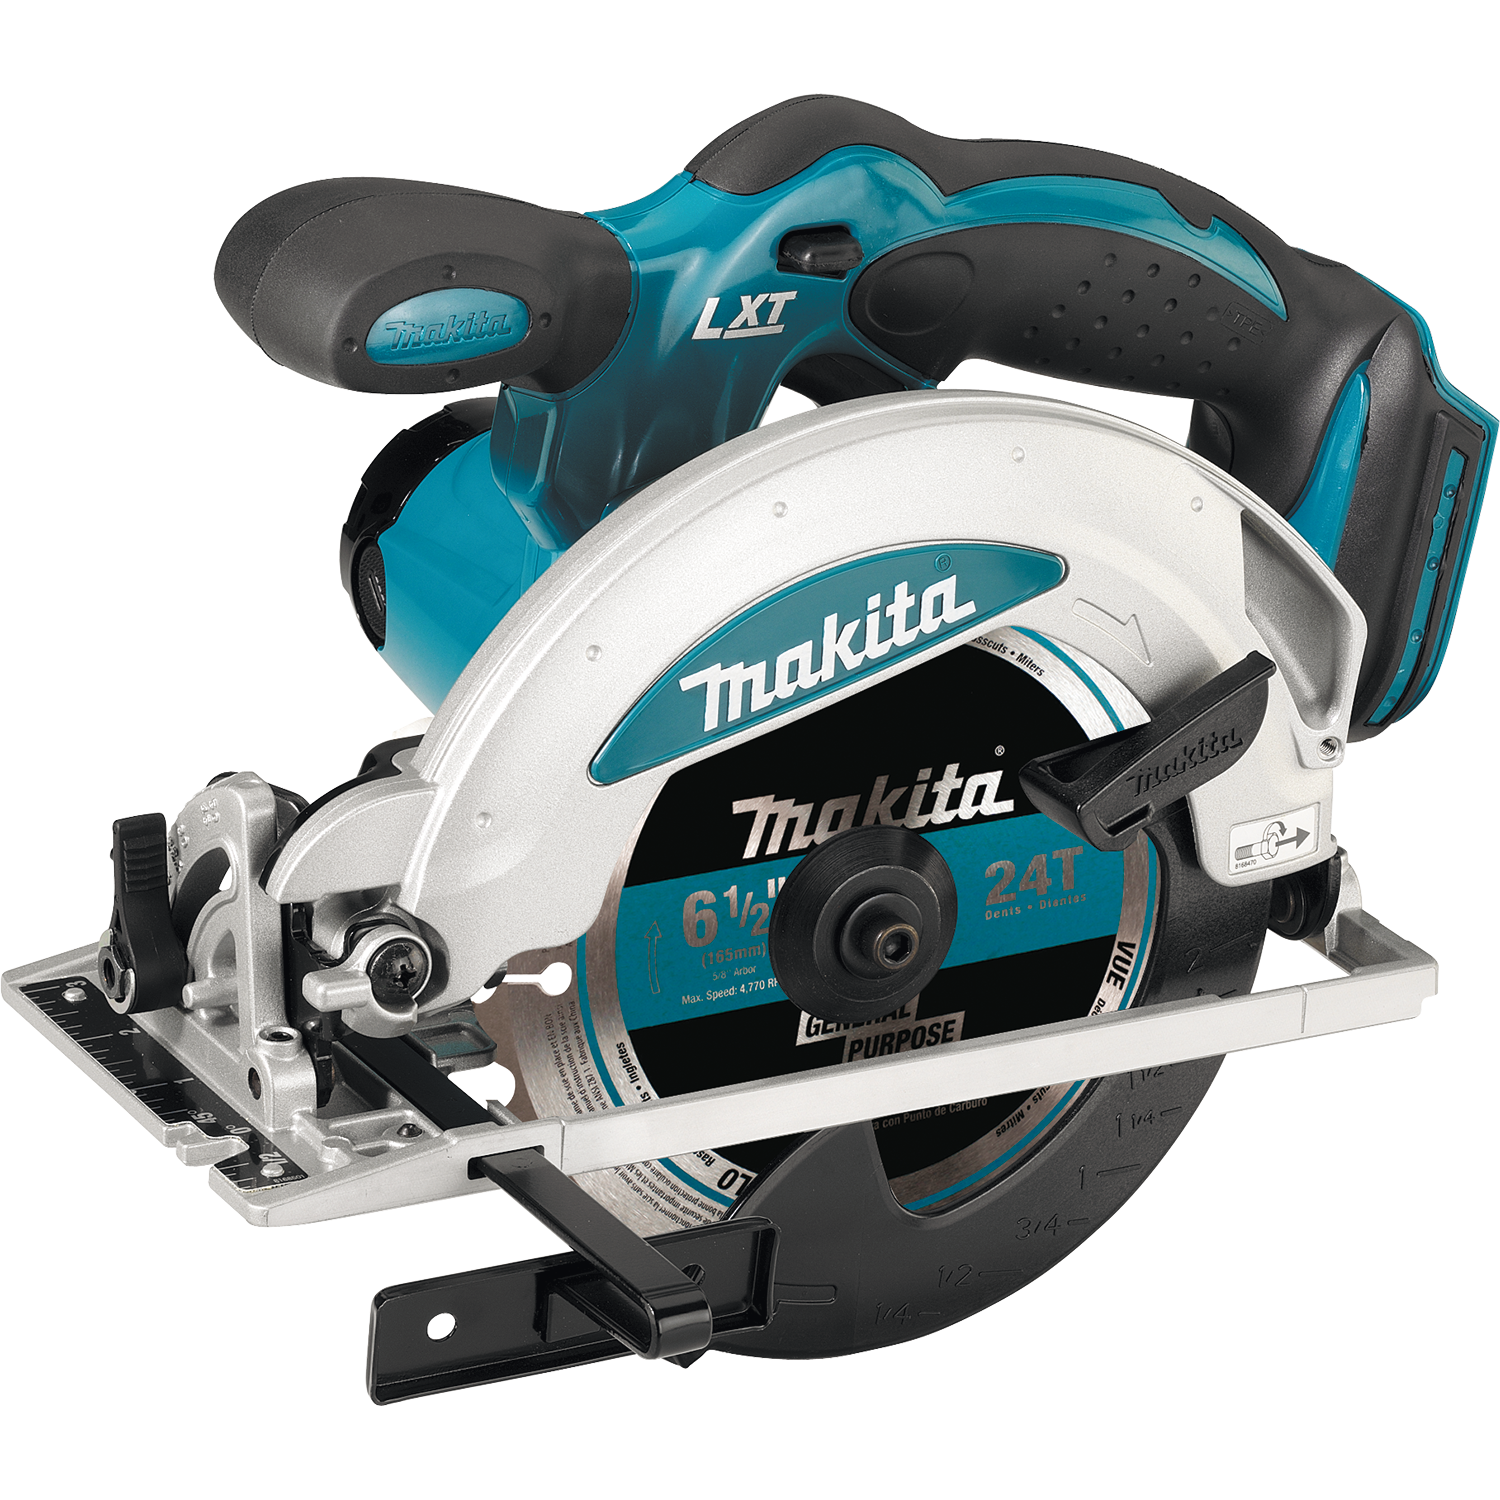 Makita usa product details xss01z xss01z greentooth Image collections